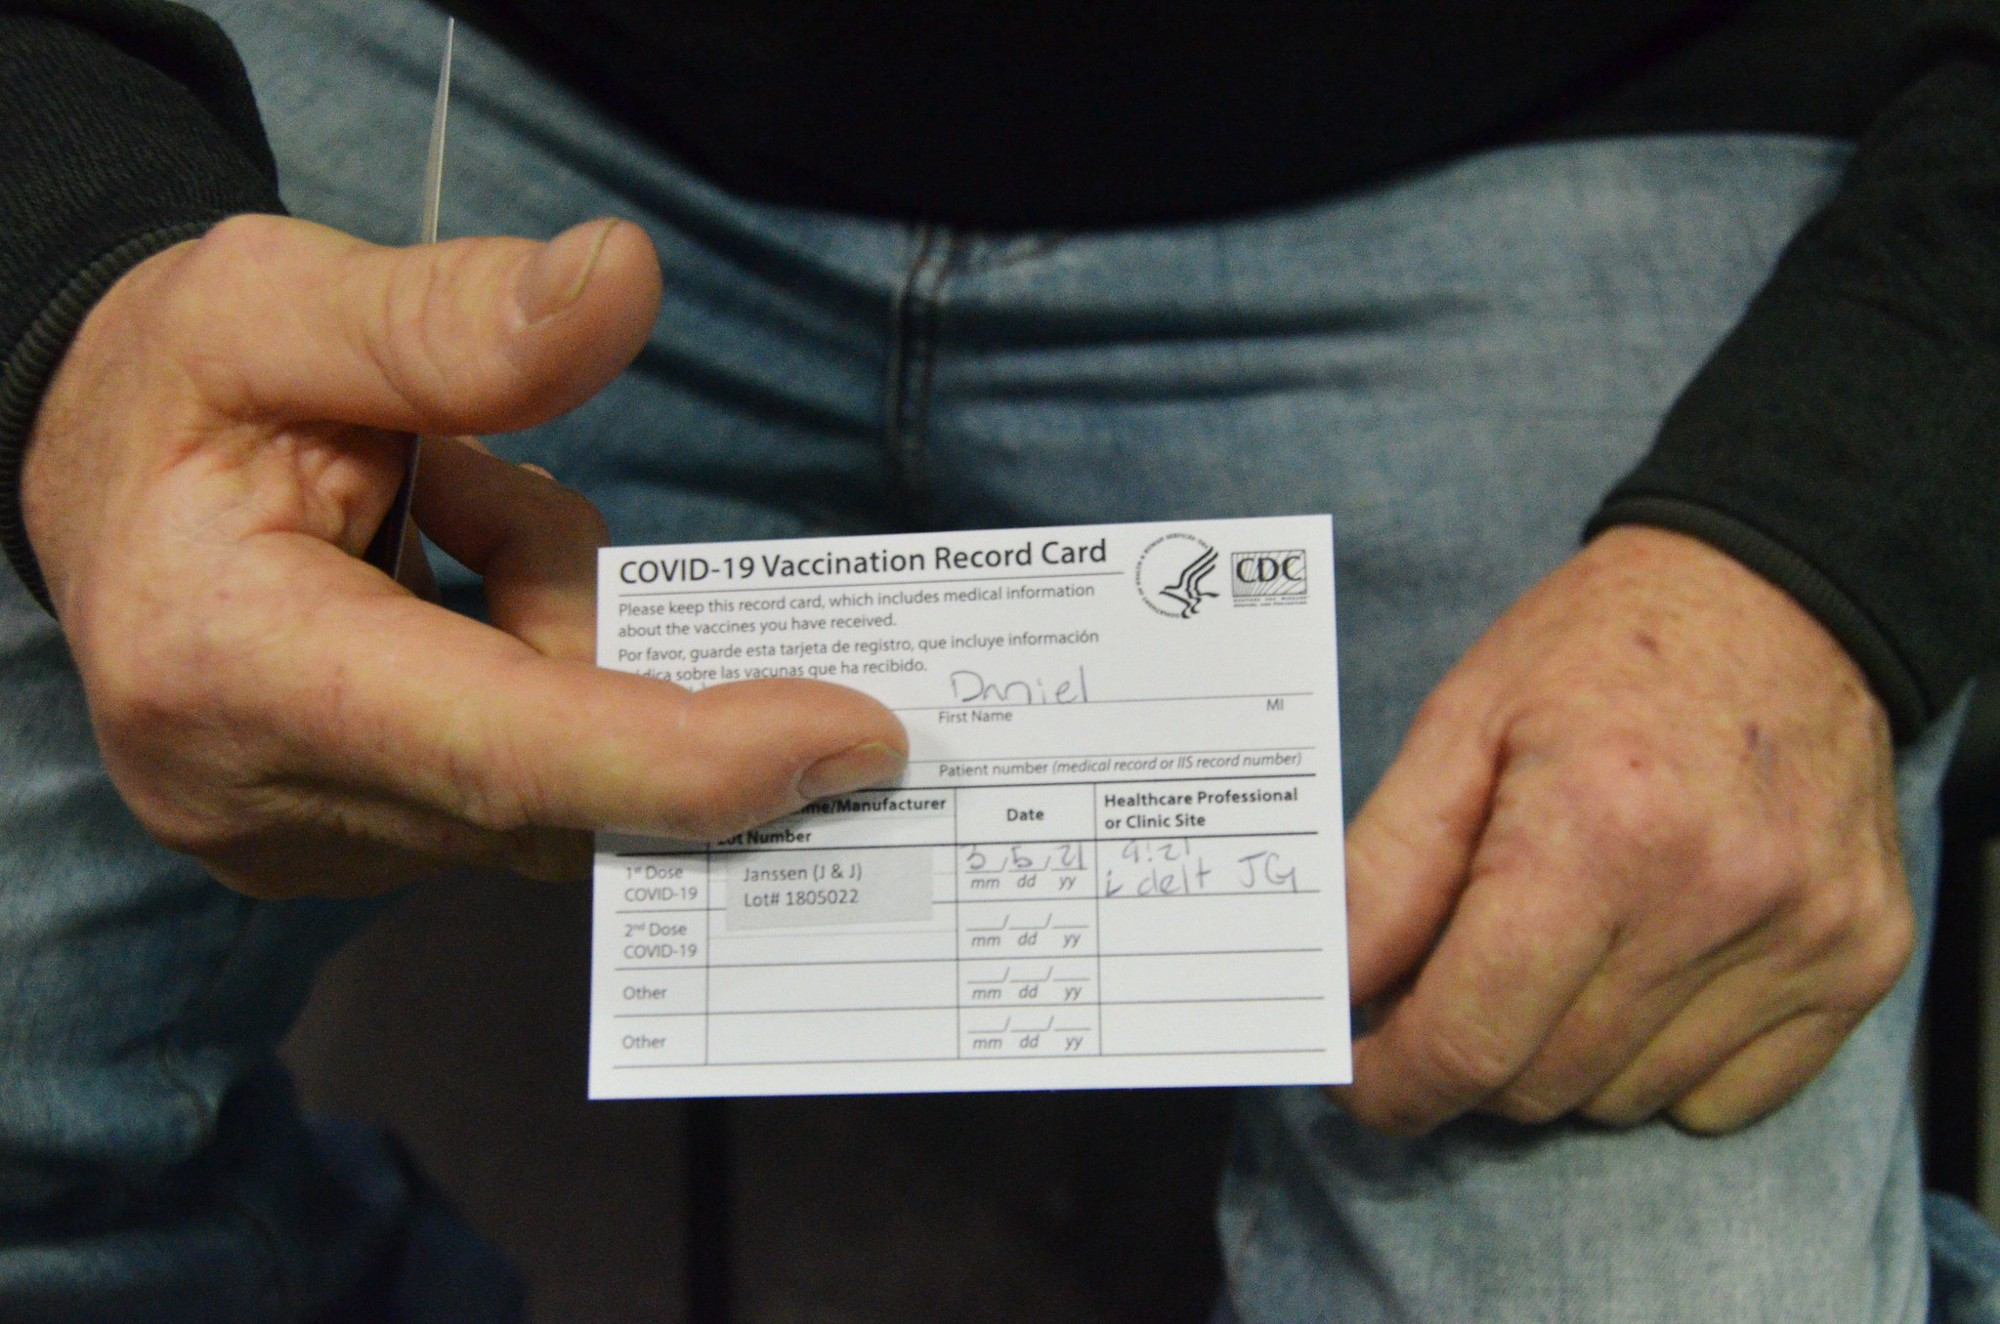 Pictured: Genuine vaccination card of the first person to receive the Johnson and Johnson vaccine at the Javits Center in March 2021. Photo by New York National Guard.